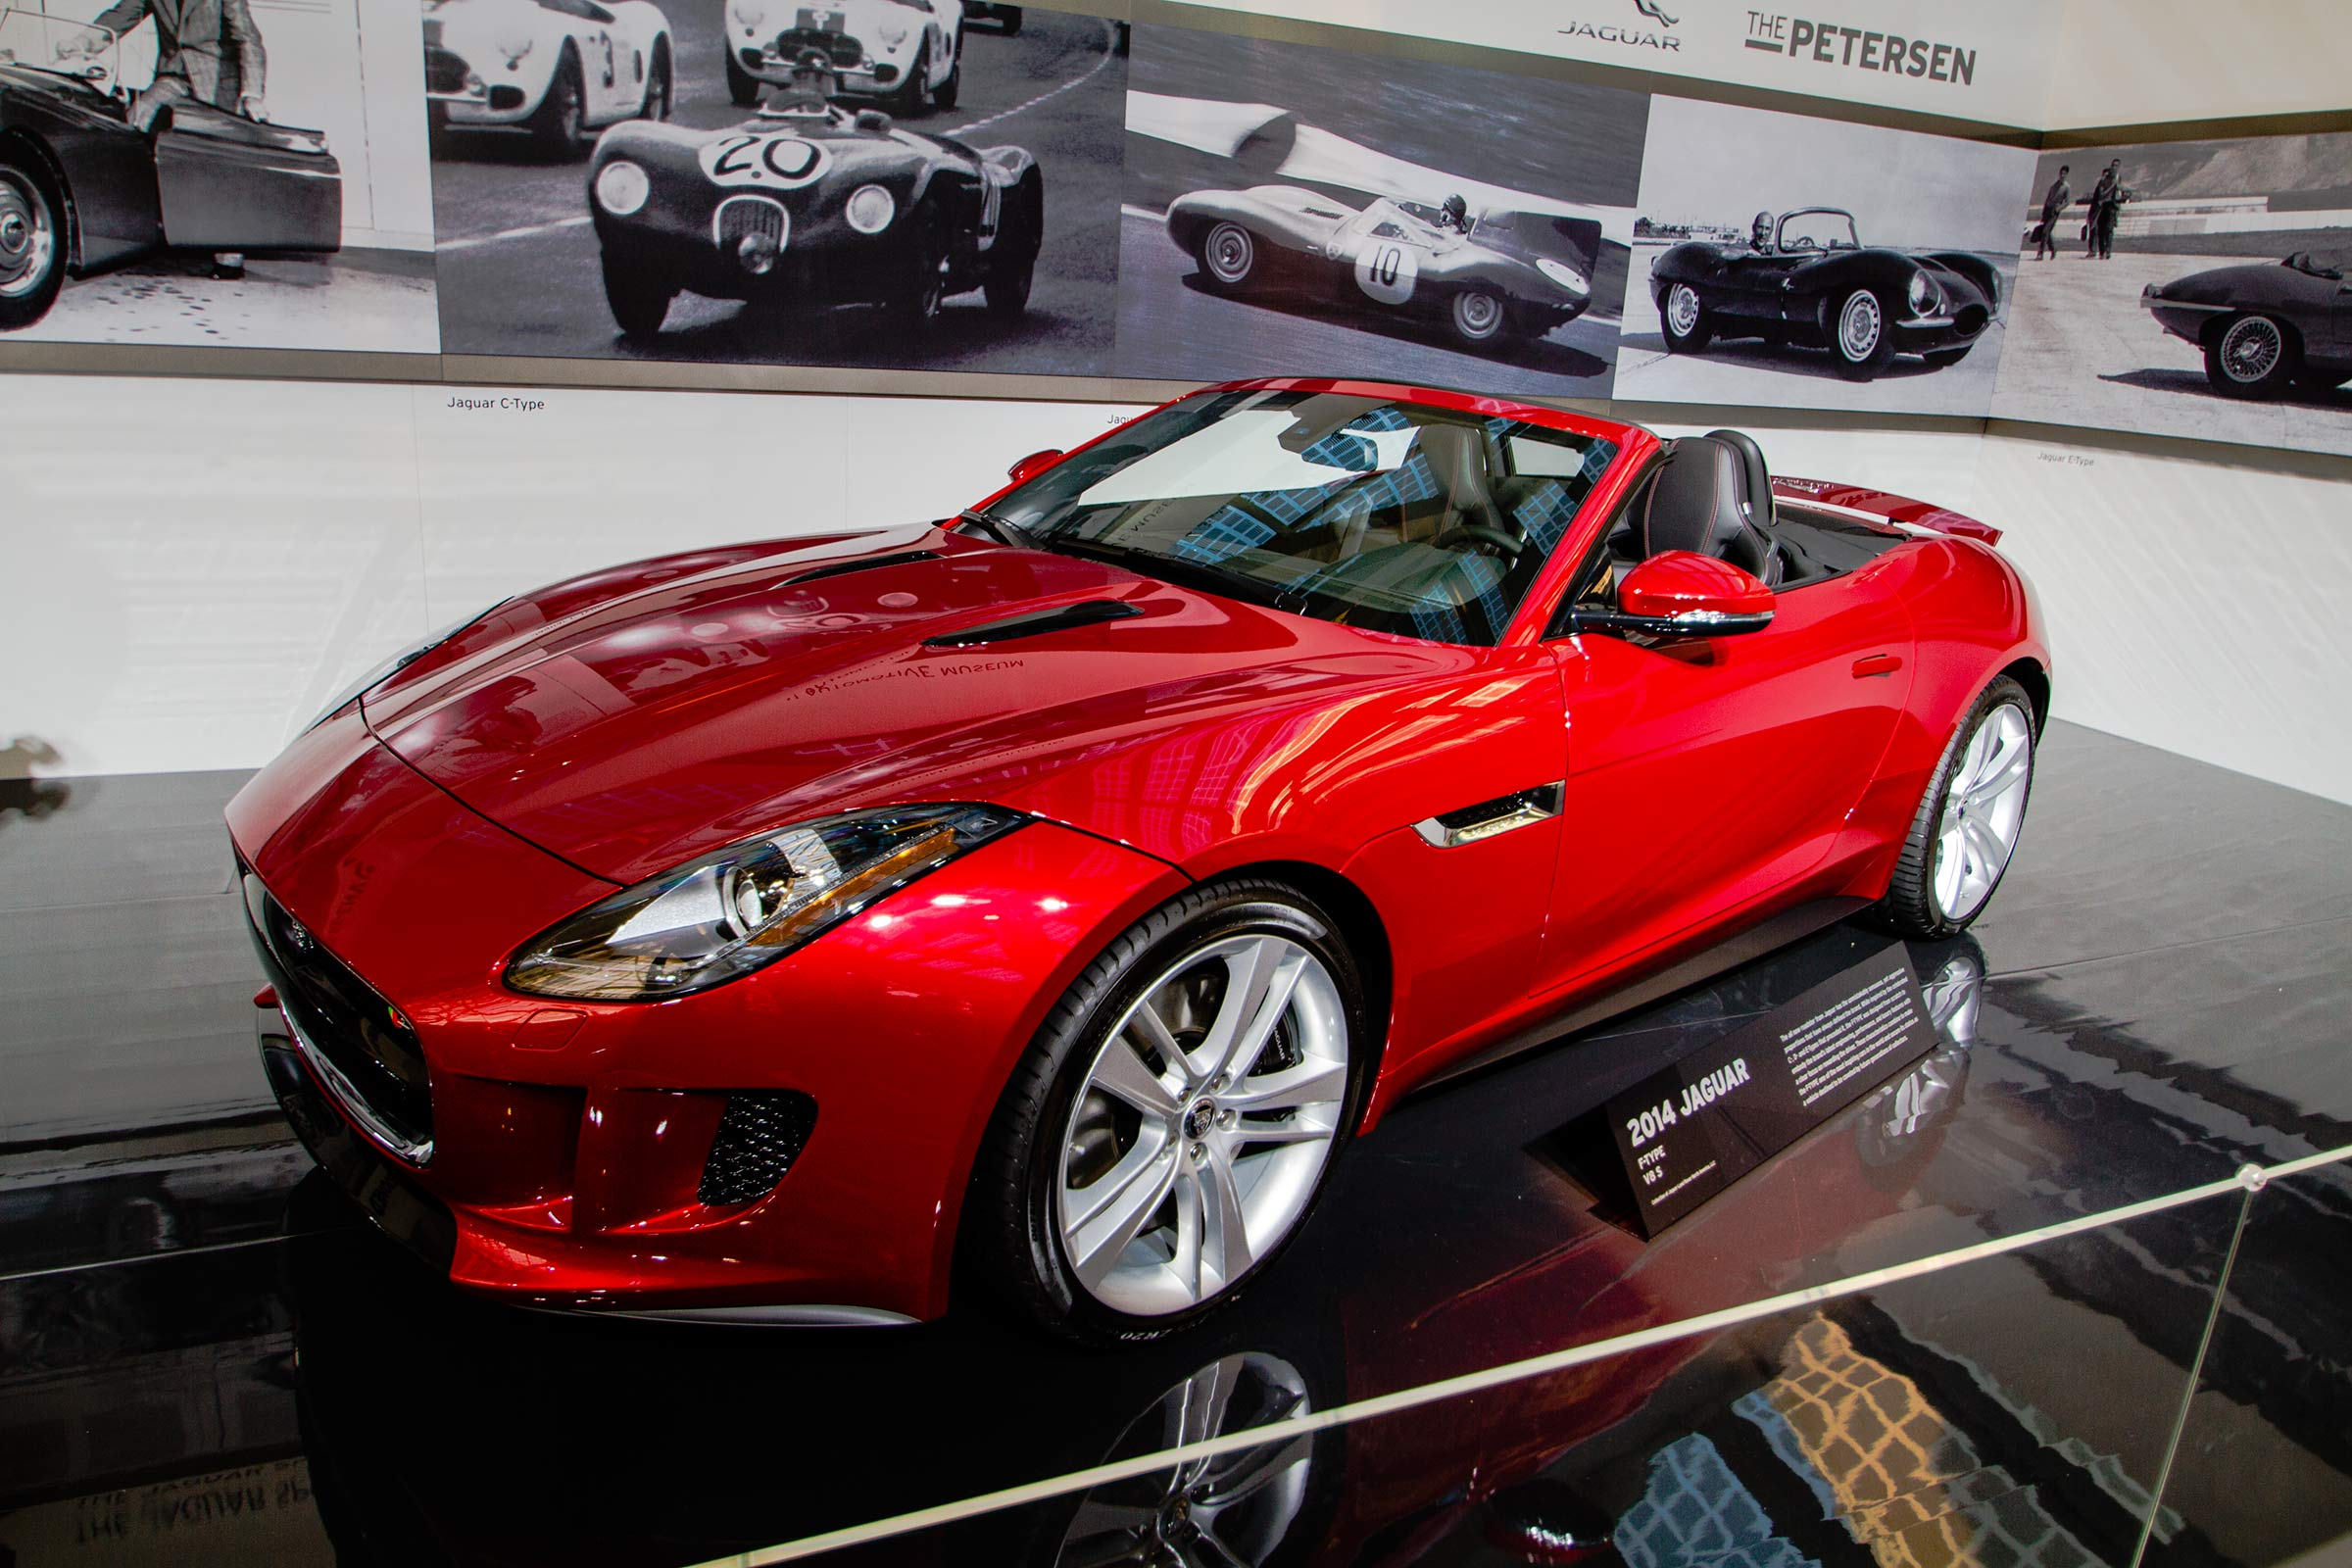 take to evs photos i angeles race news auto the bobby rahal jaguar ready interview dealership tesla fight los is show pace official